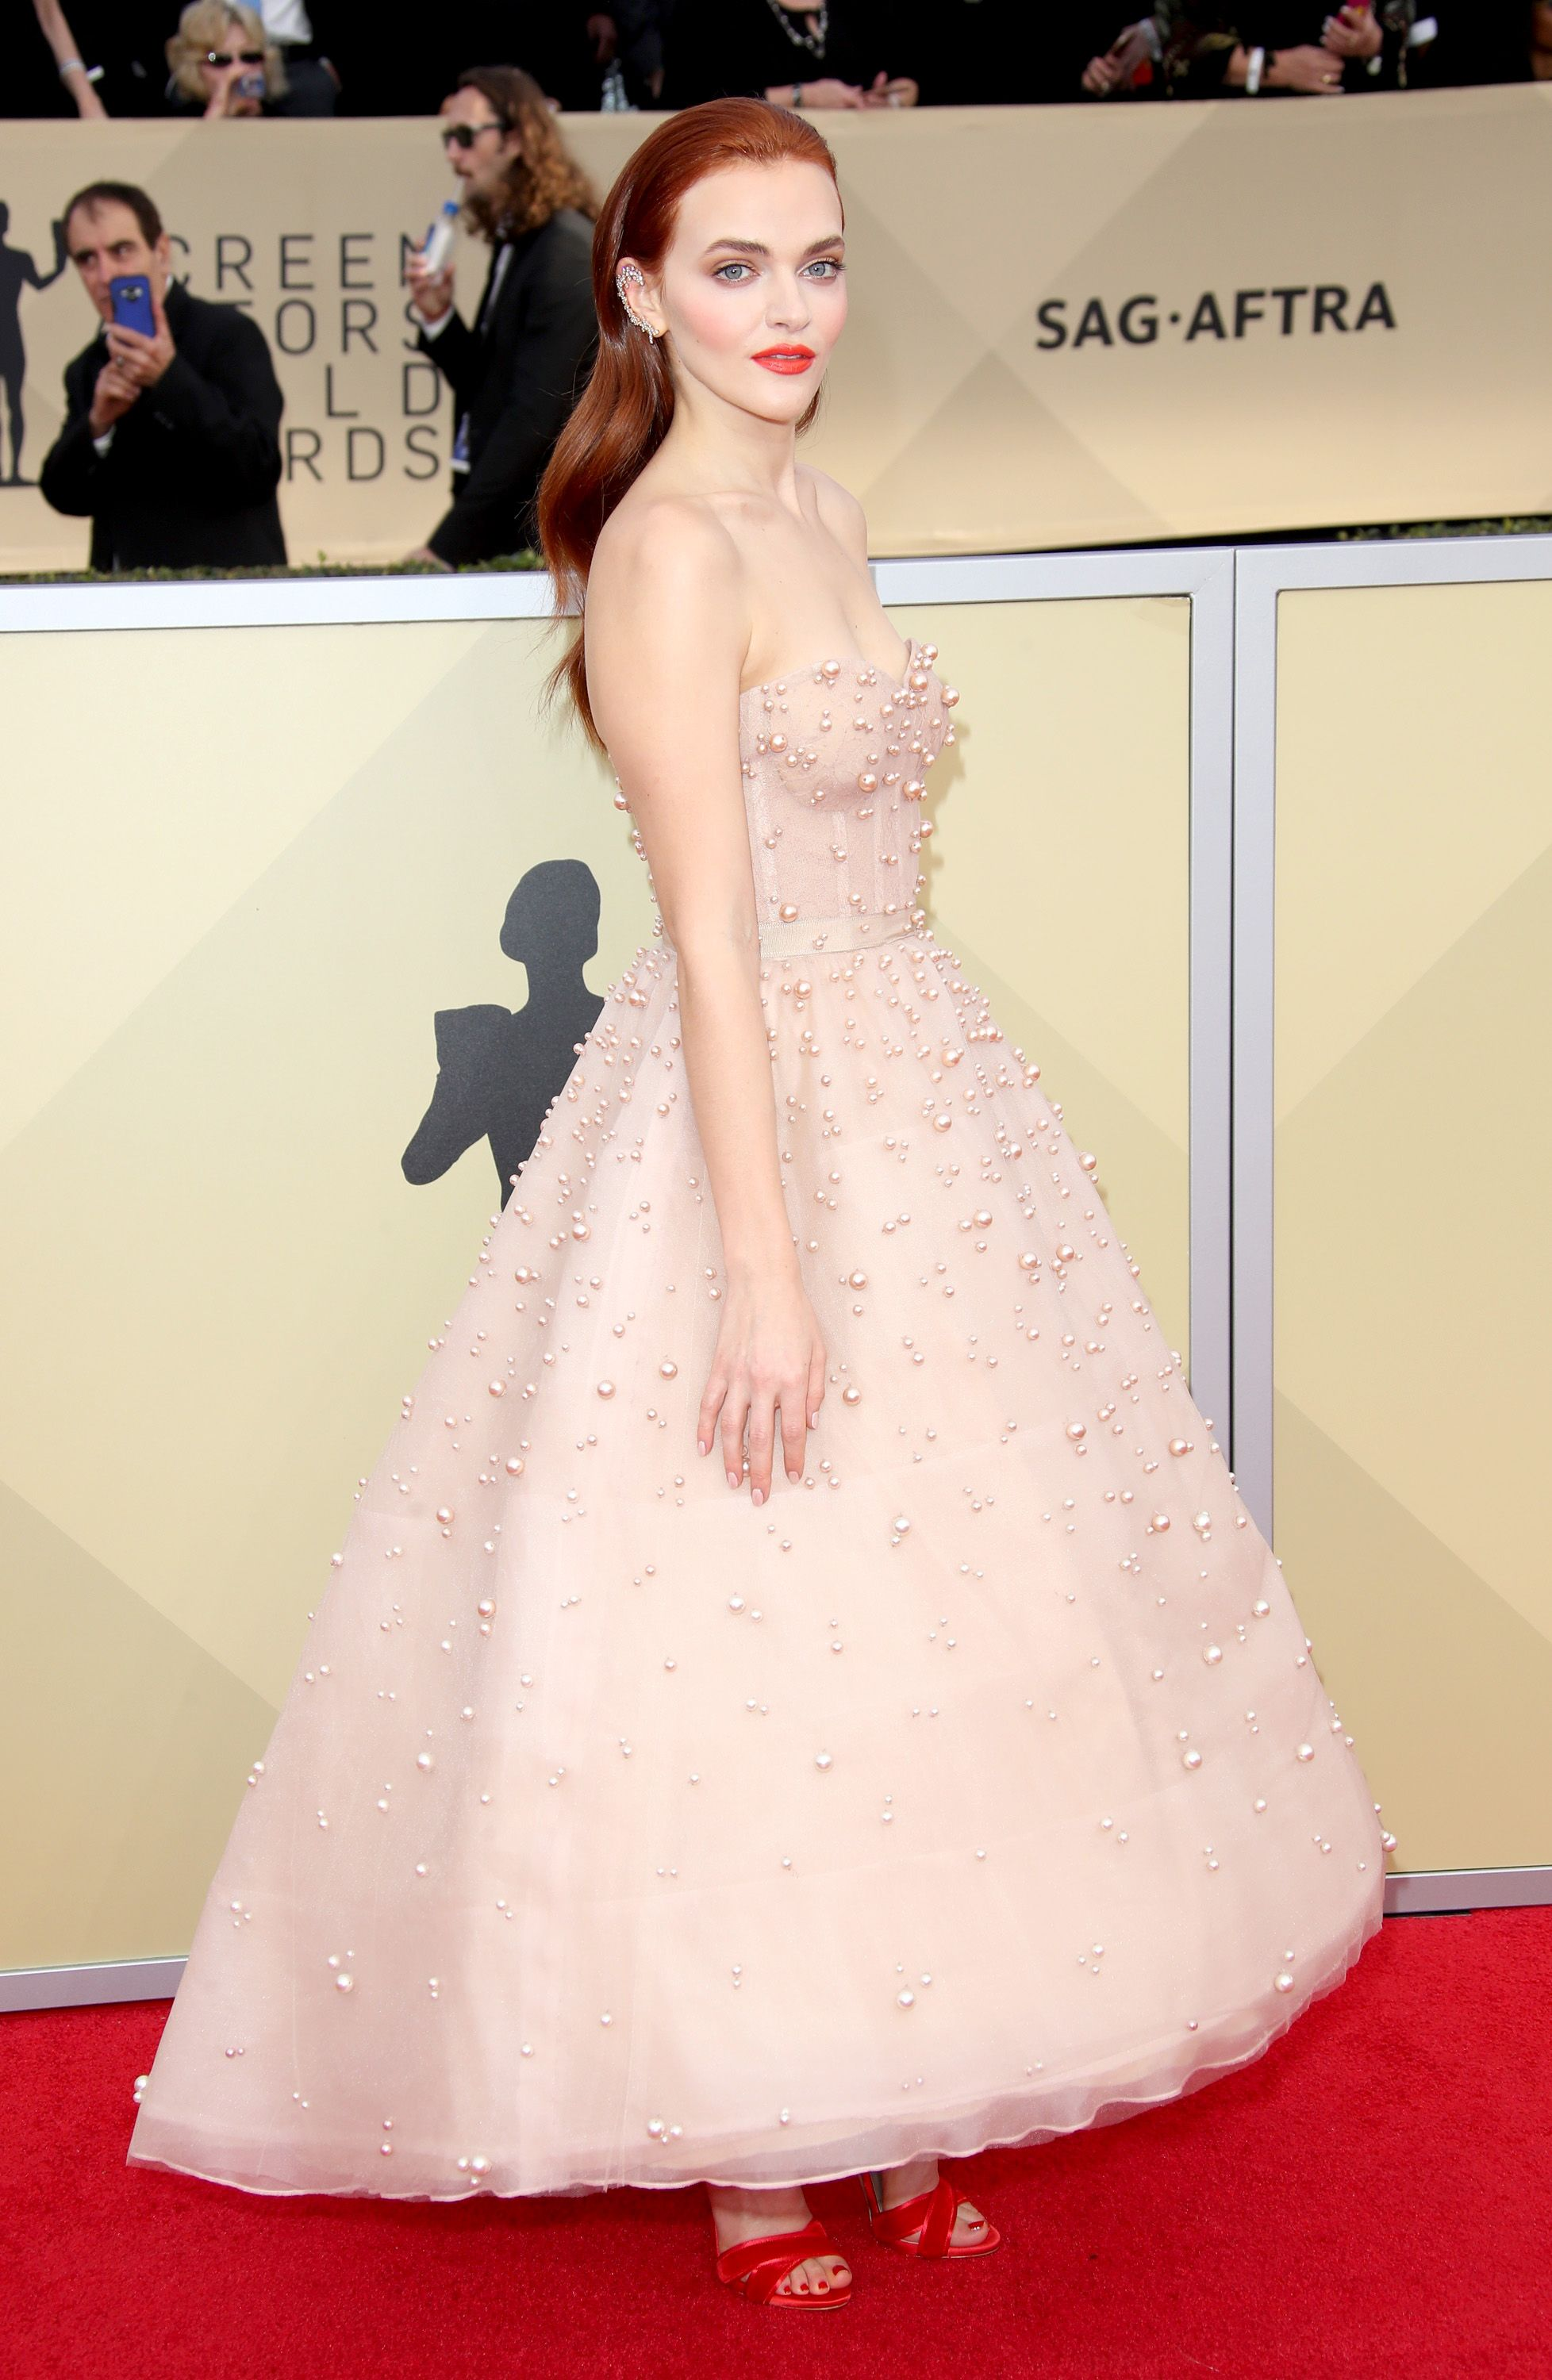 af7ded741fc4 30 Best Dresses and Gowns of 2018 - Best Red Carpet 2018